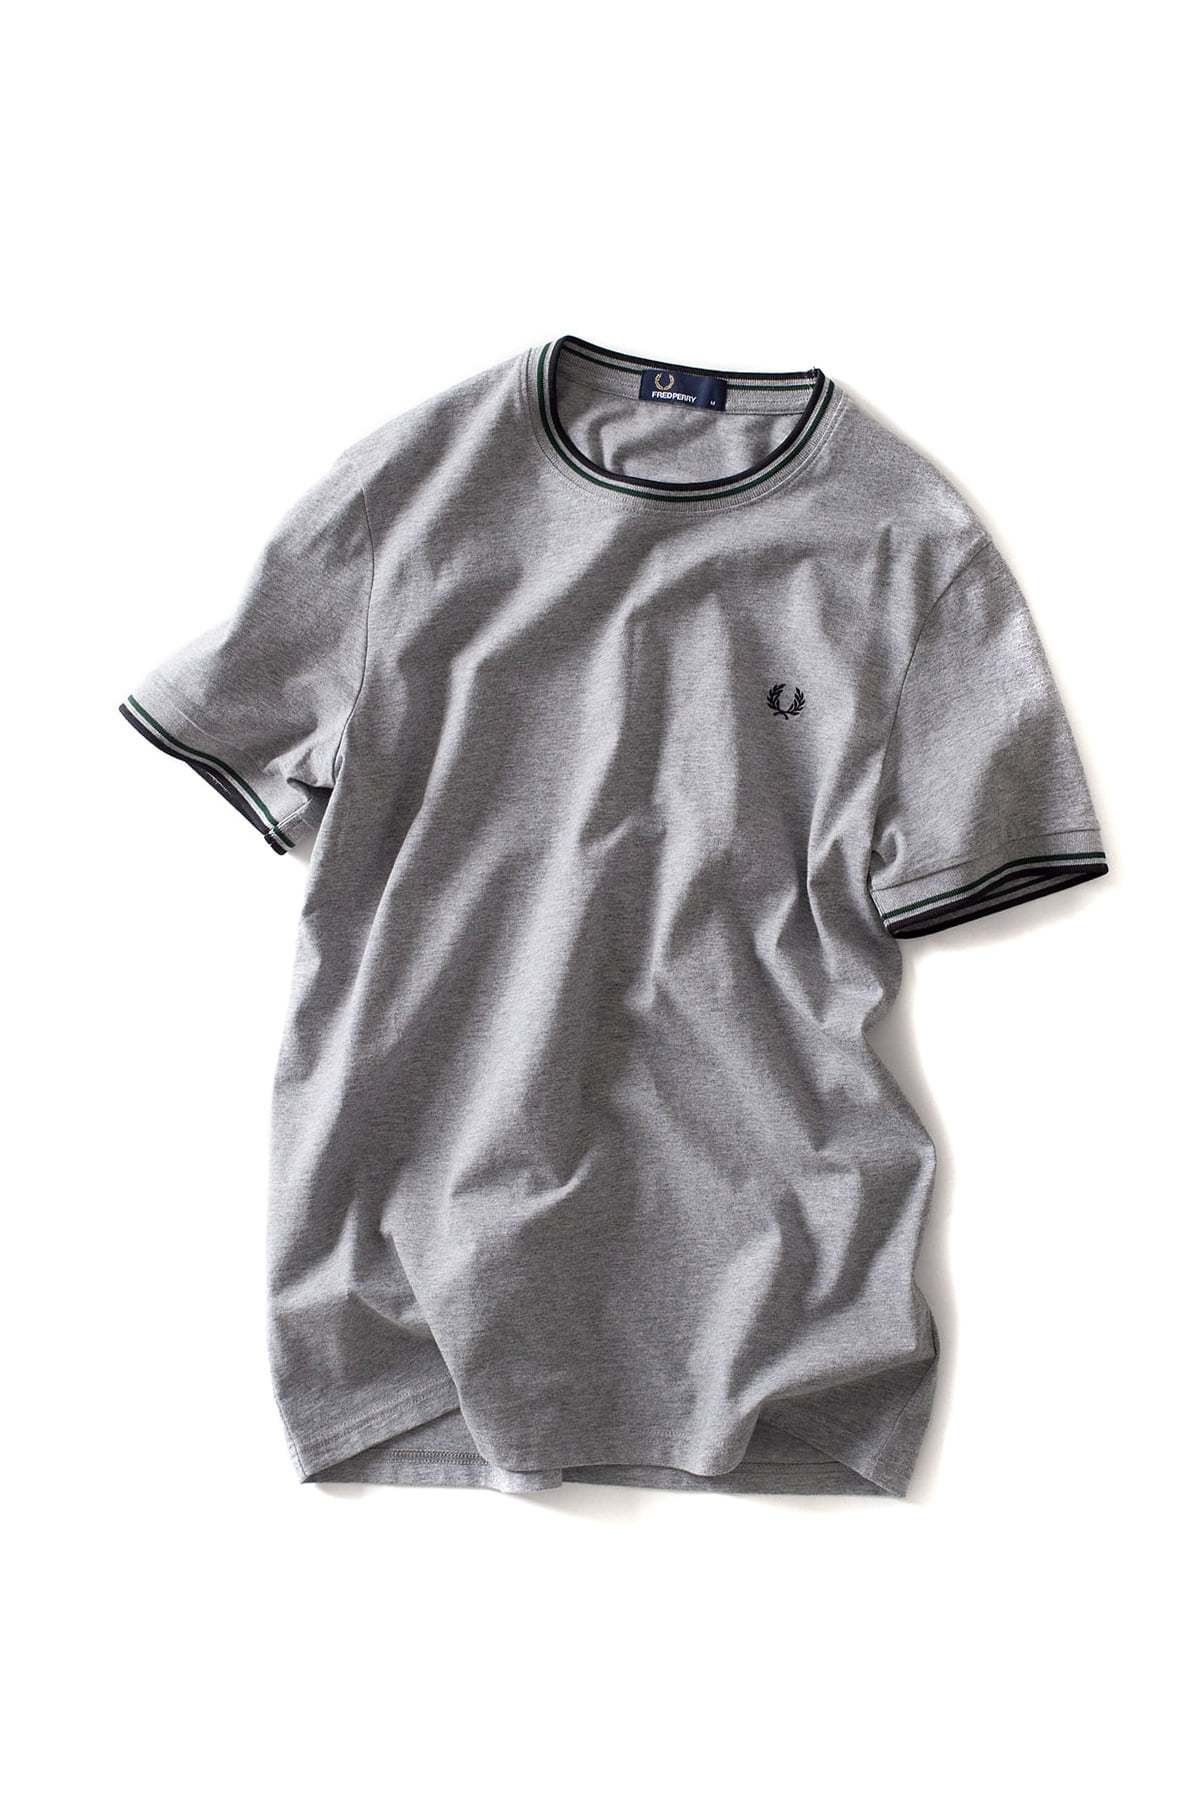 FRED PERRY : Twin Tipped T-Shirt (Steel Marl)